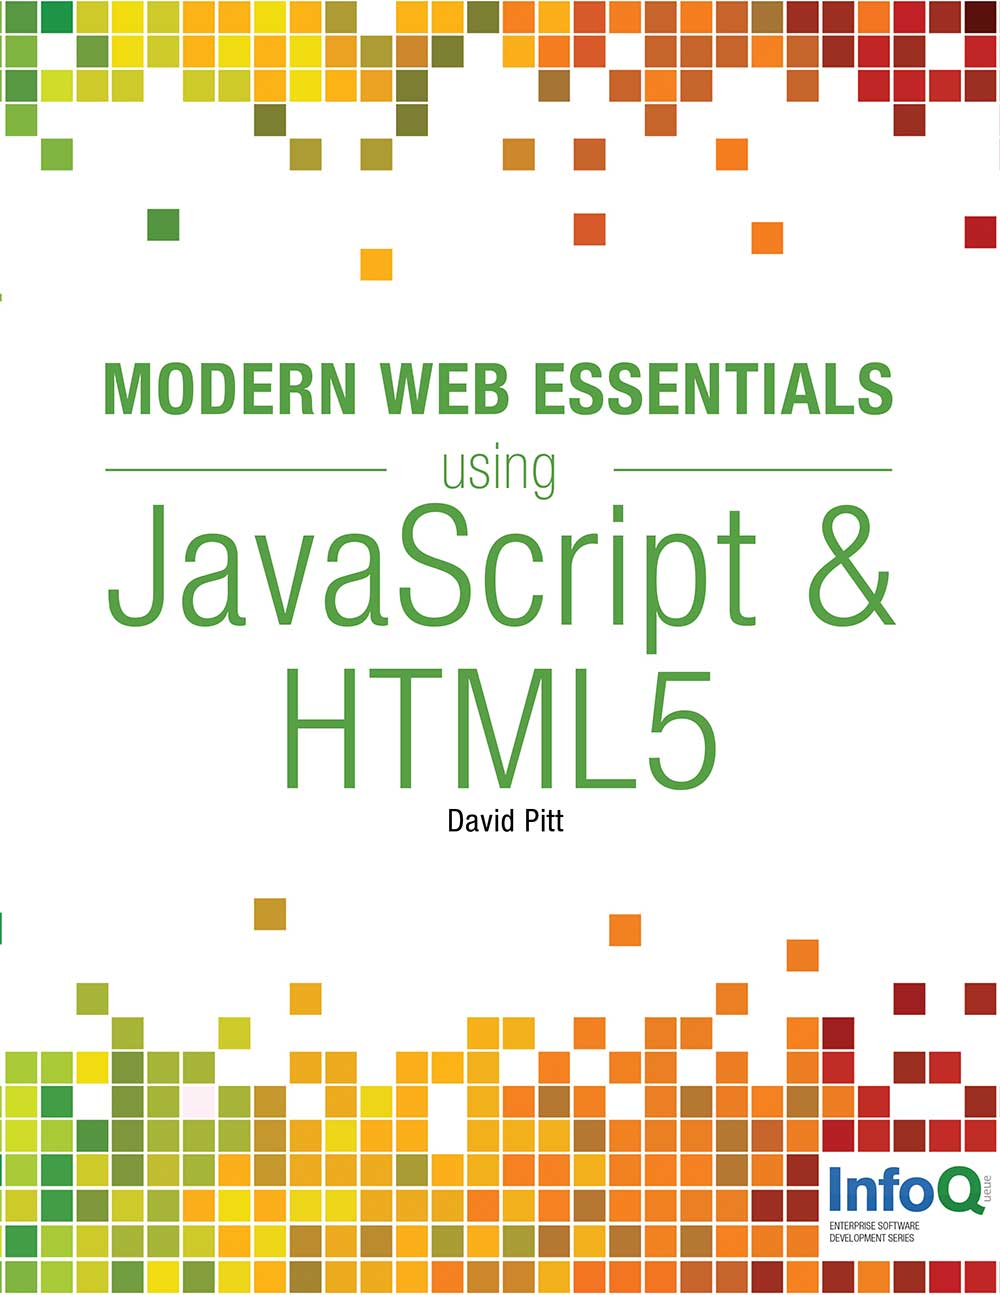 Modern Web Essentials Using JavaScript and HTML5 e-book